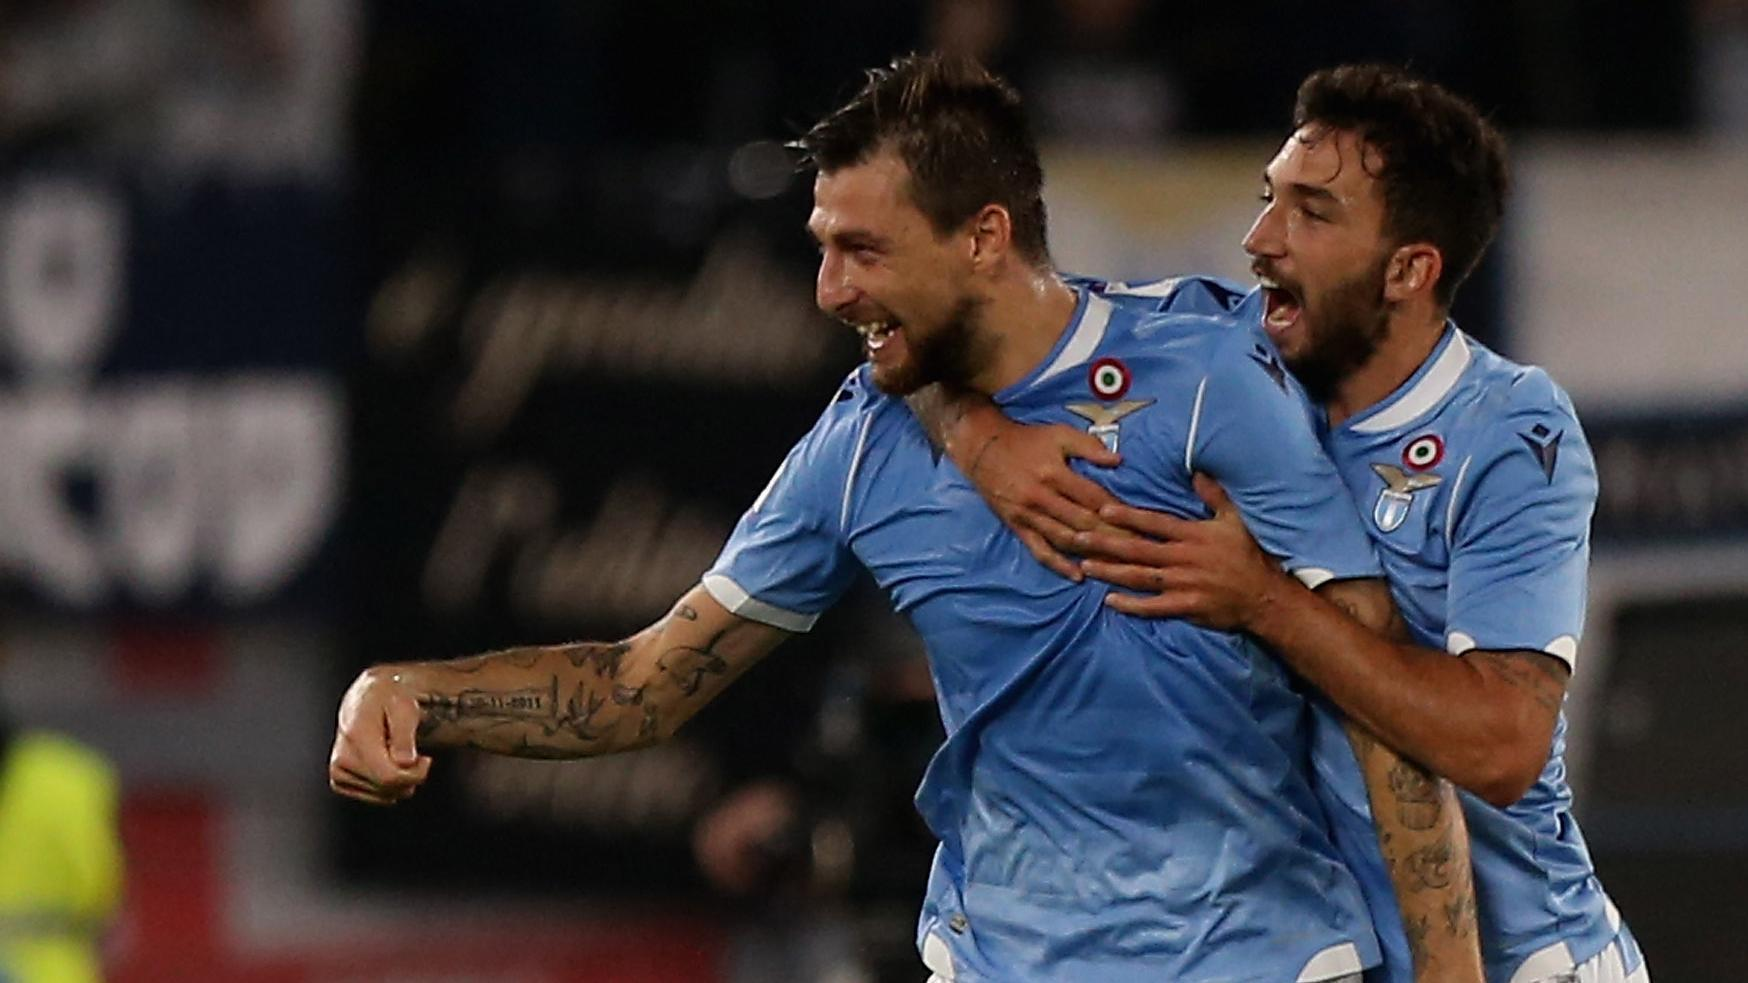 Lazio defender scores unbelievable goal from way out